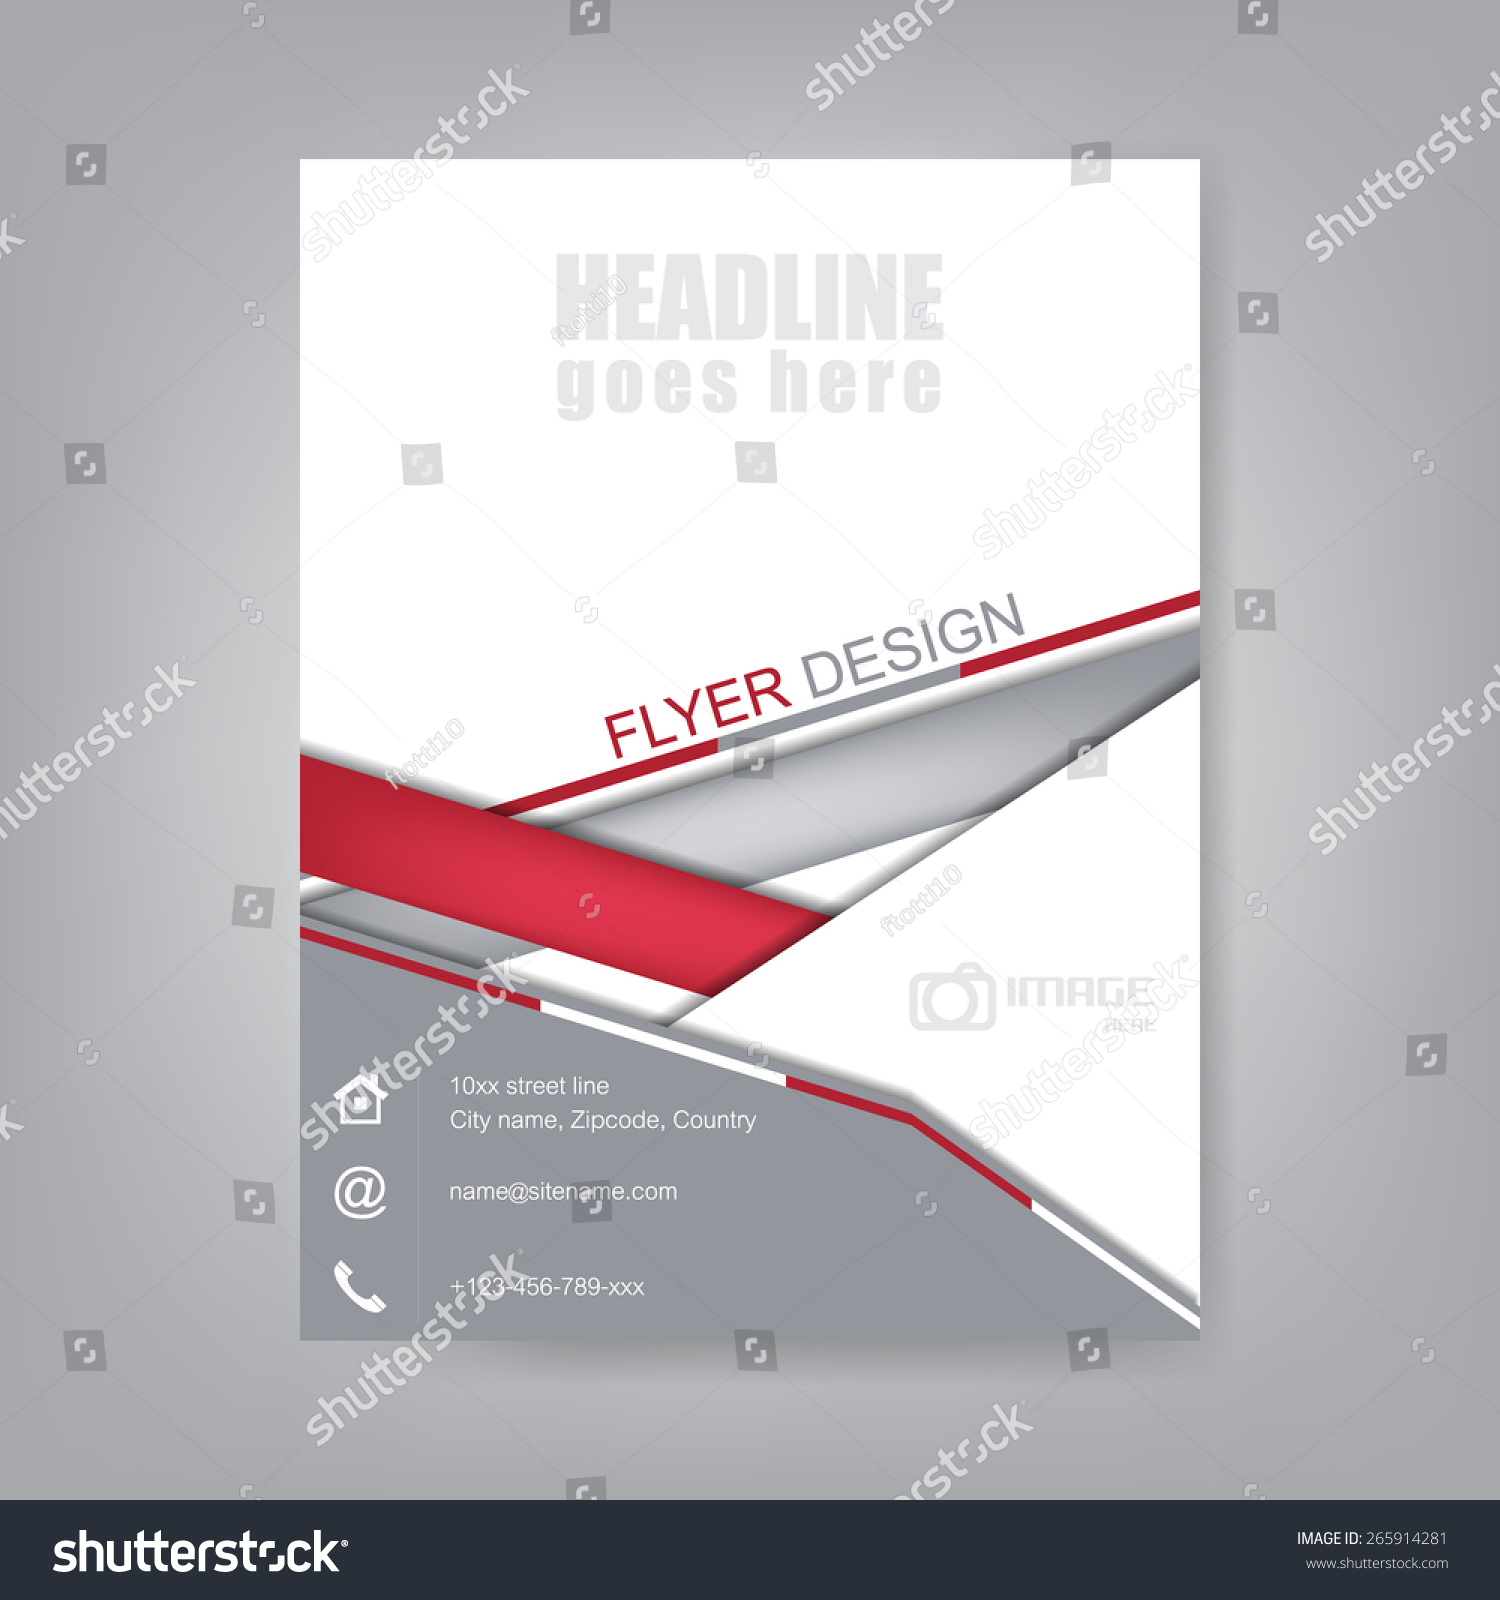 Business Flyer Brochure Template Corporate Bannerdesign Stock Vector ...